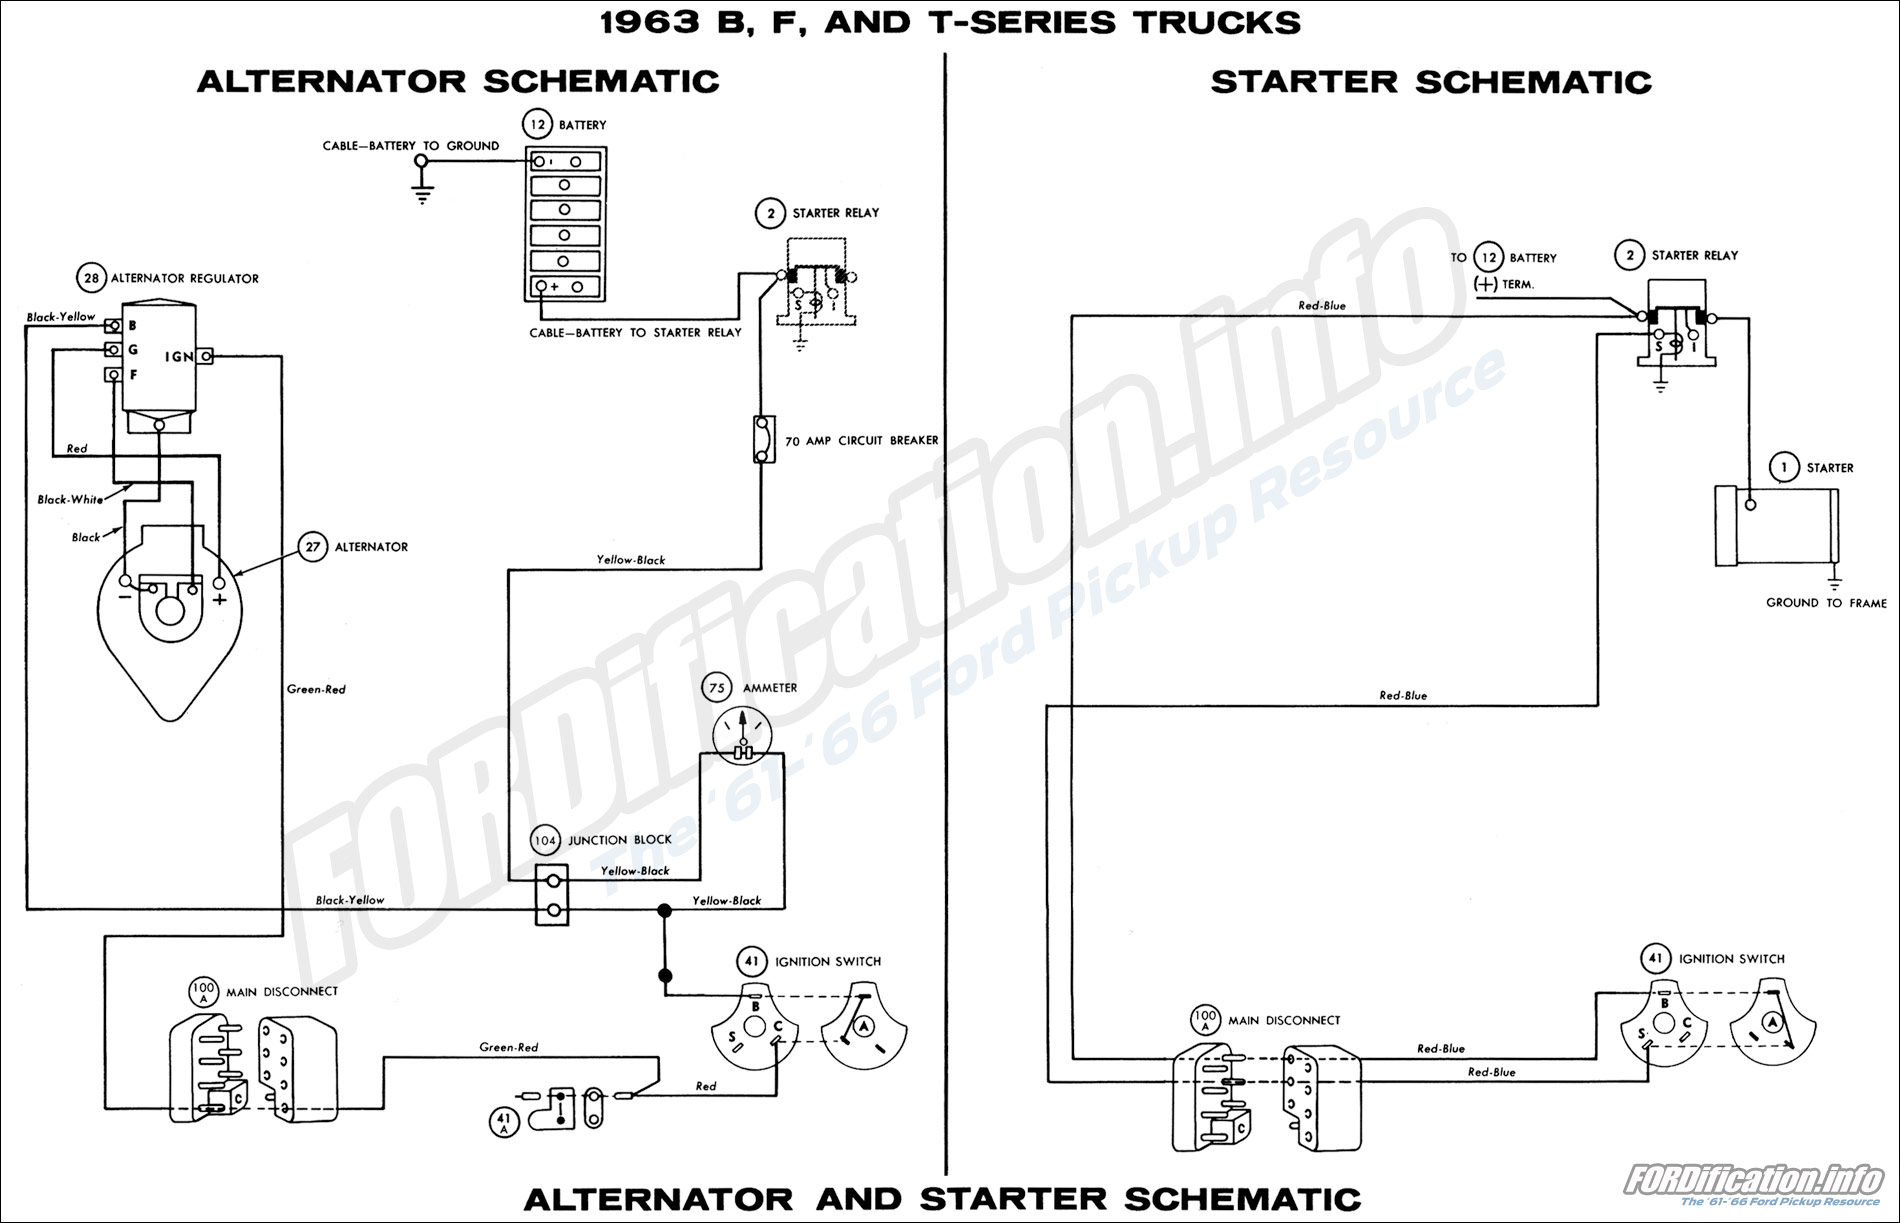 hight resolution of 1963 ford starter diagram wiring diagram centre 1963 ford truck wiring diagrams fordification info the